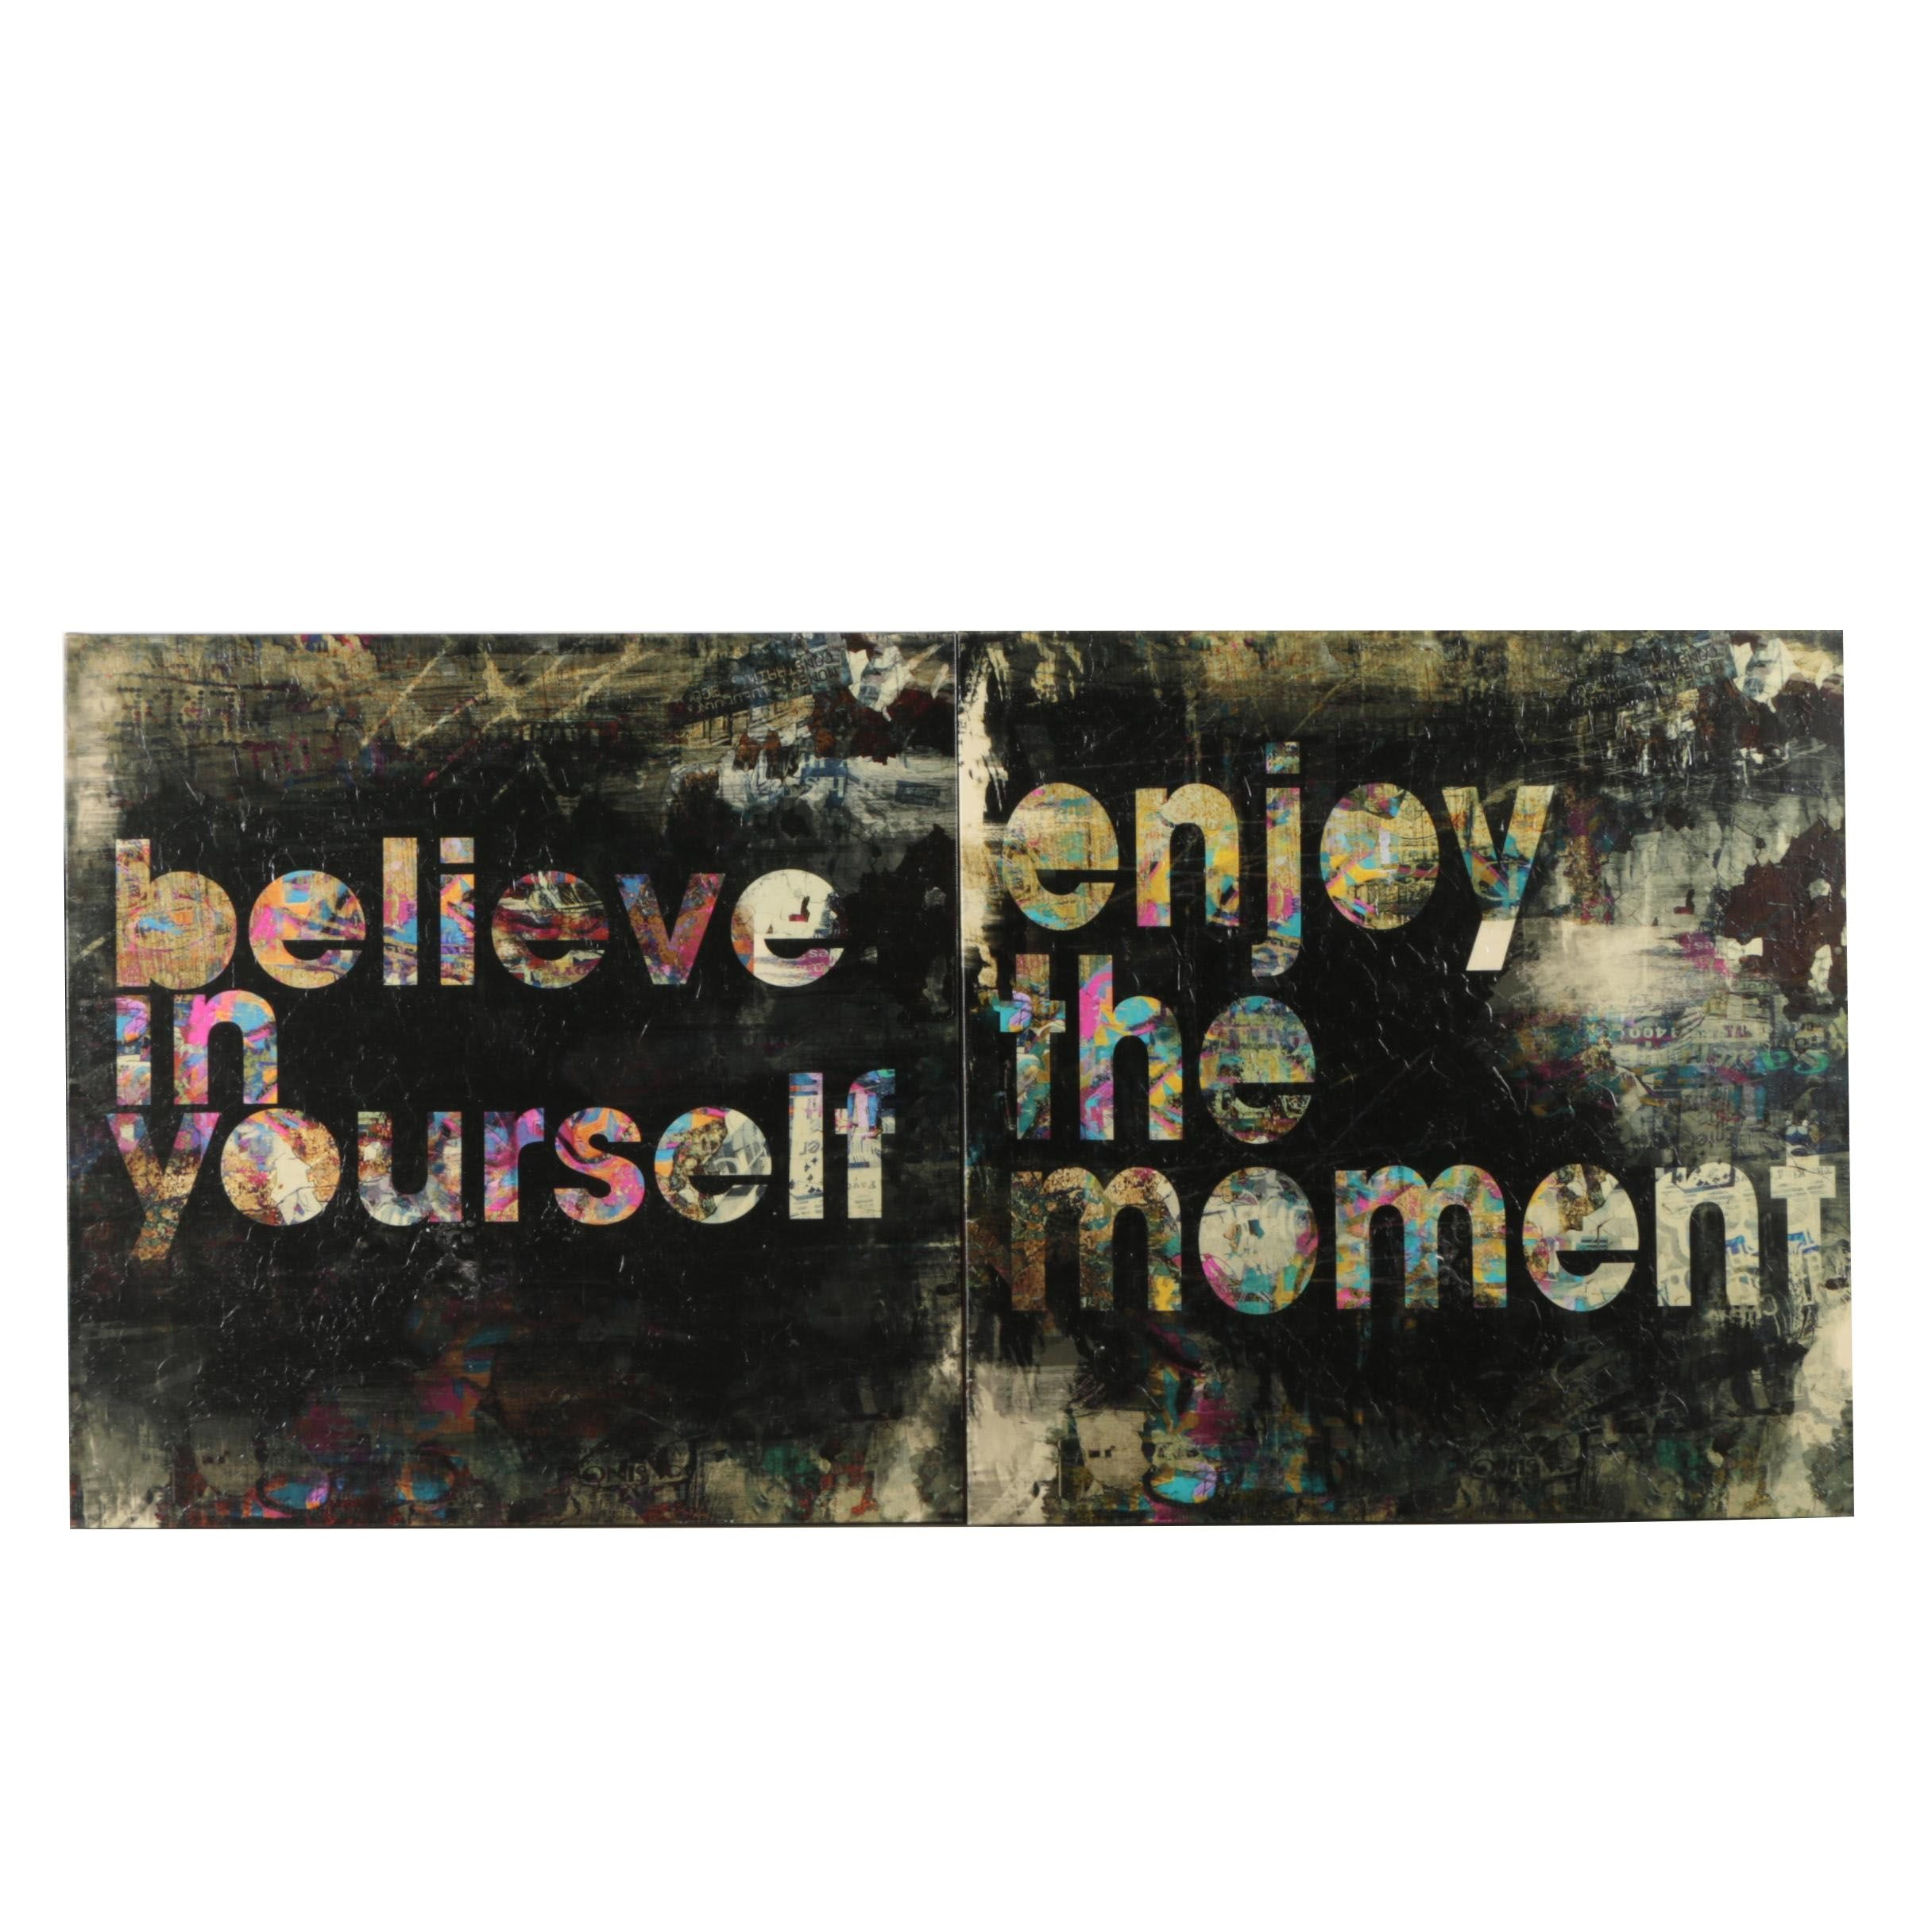 Embellished Giclees on Canvas After Austin Beiv of Inspirational Typography